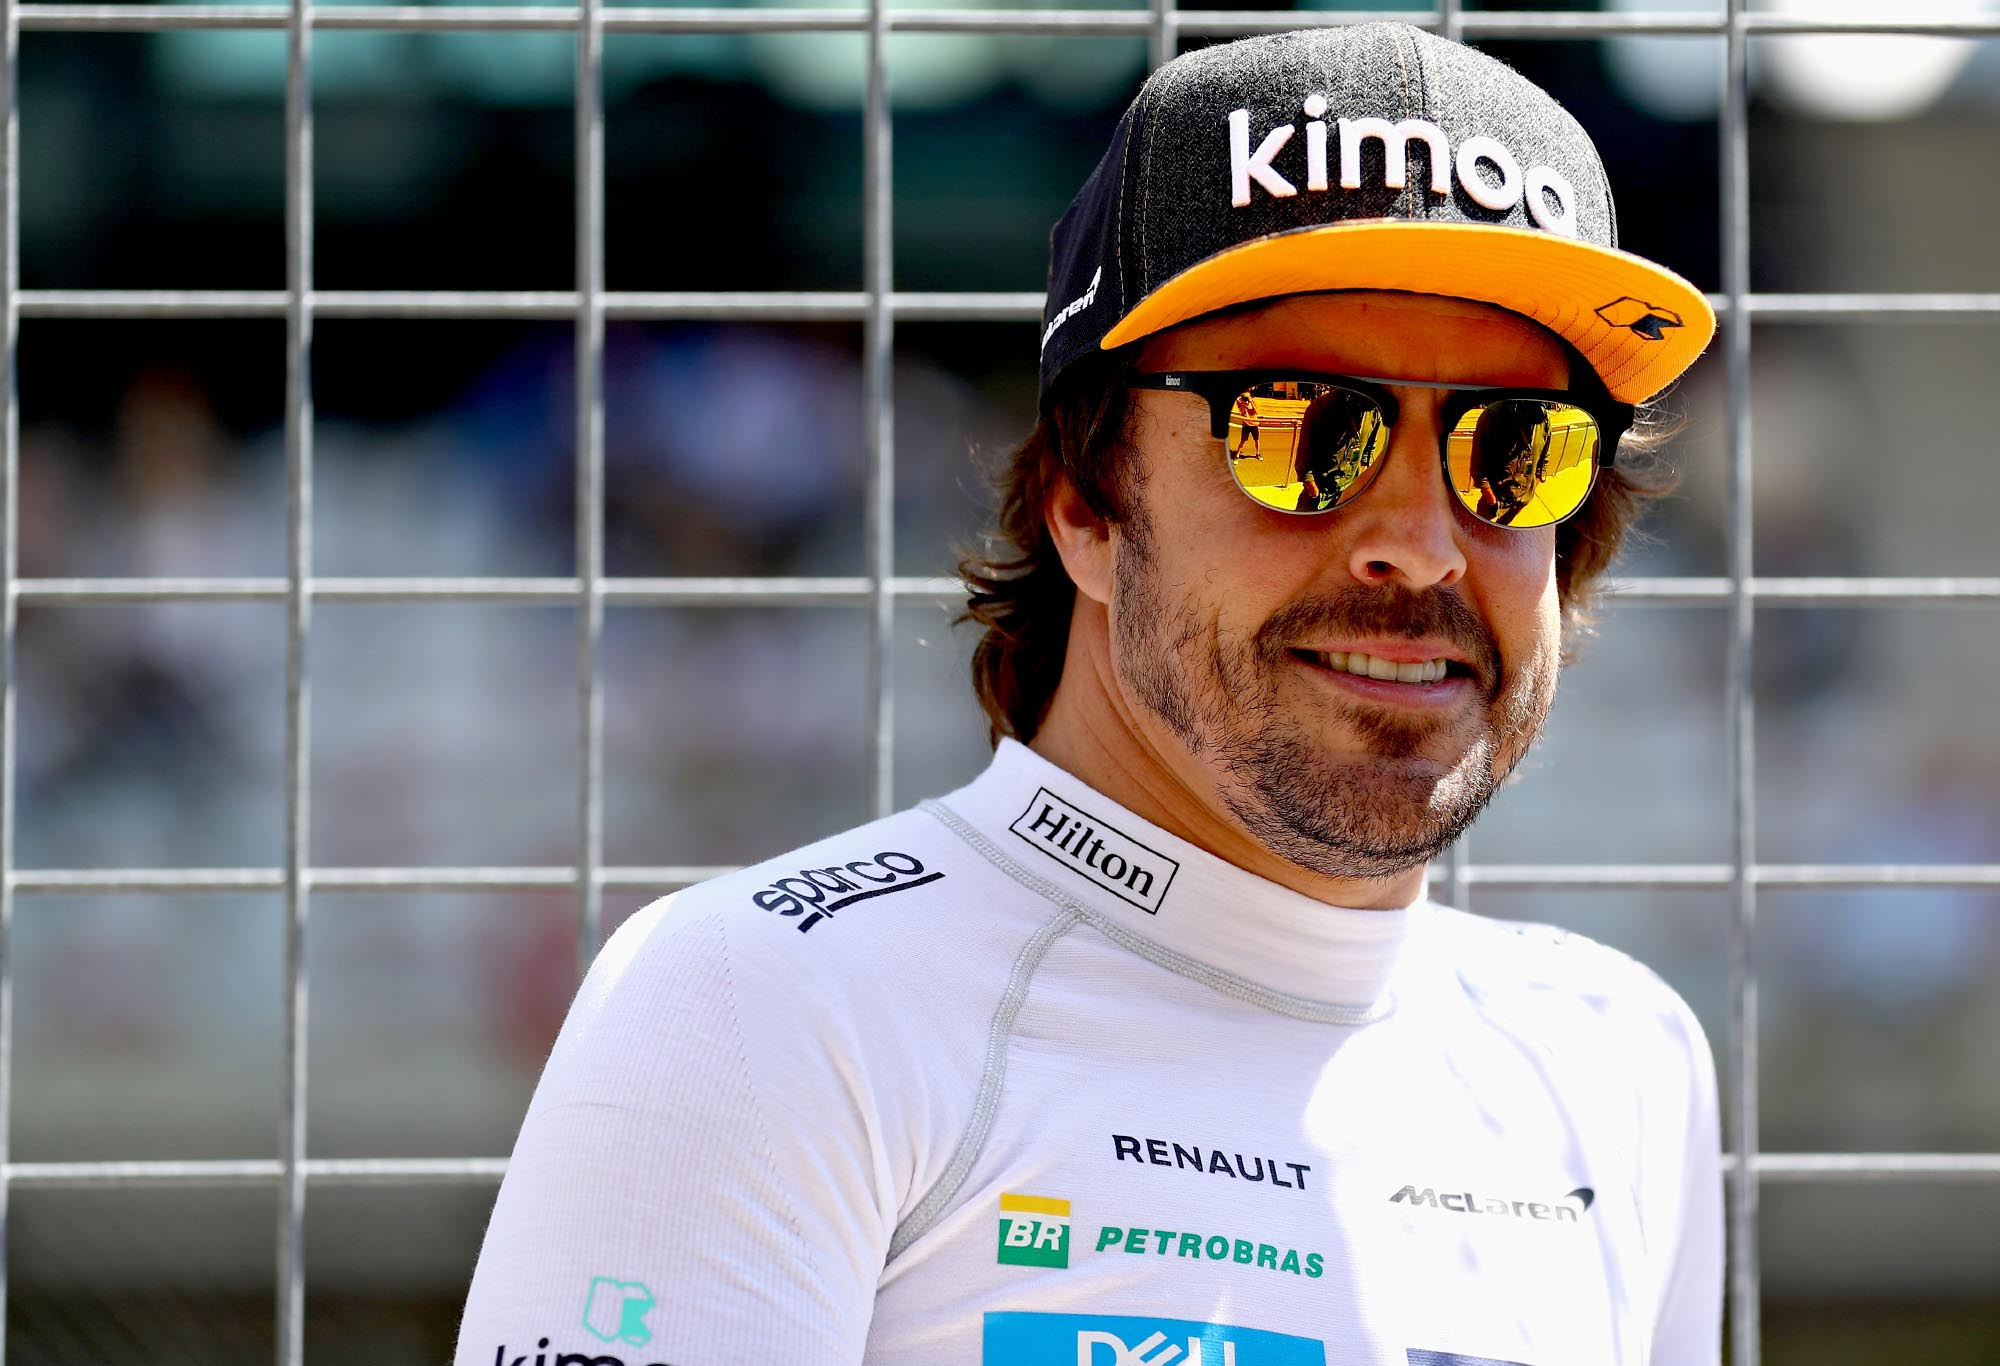 Fernando Alonso of Spain and McLaren F1 looks on before the Formula One Grand Prix of Austria at Red Bull Ring on July 1, 2018 in Spielberg, Austria. (Photo by Mark Thompson/Getty Images)